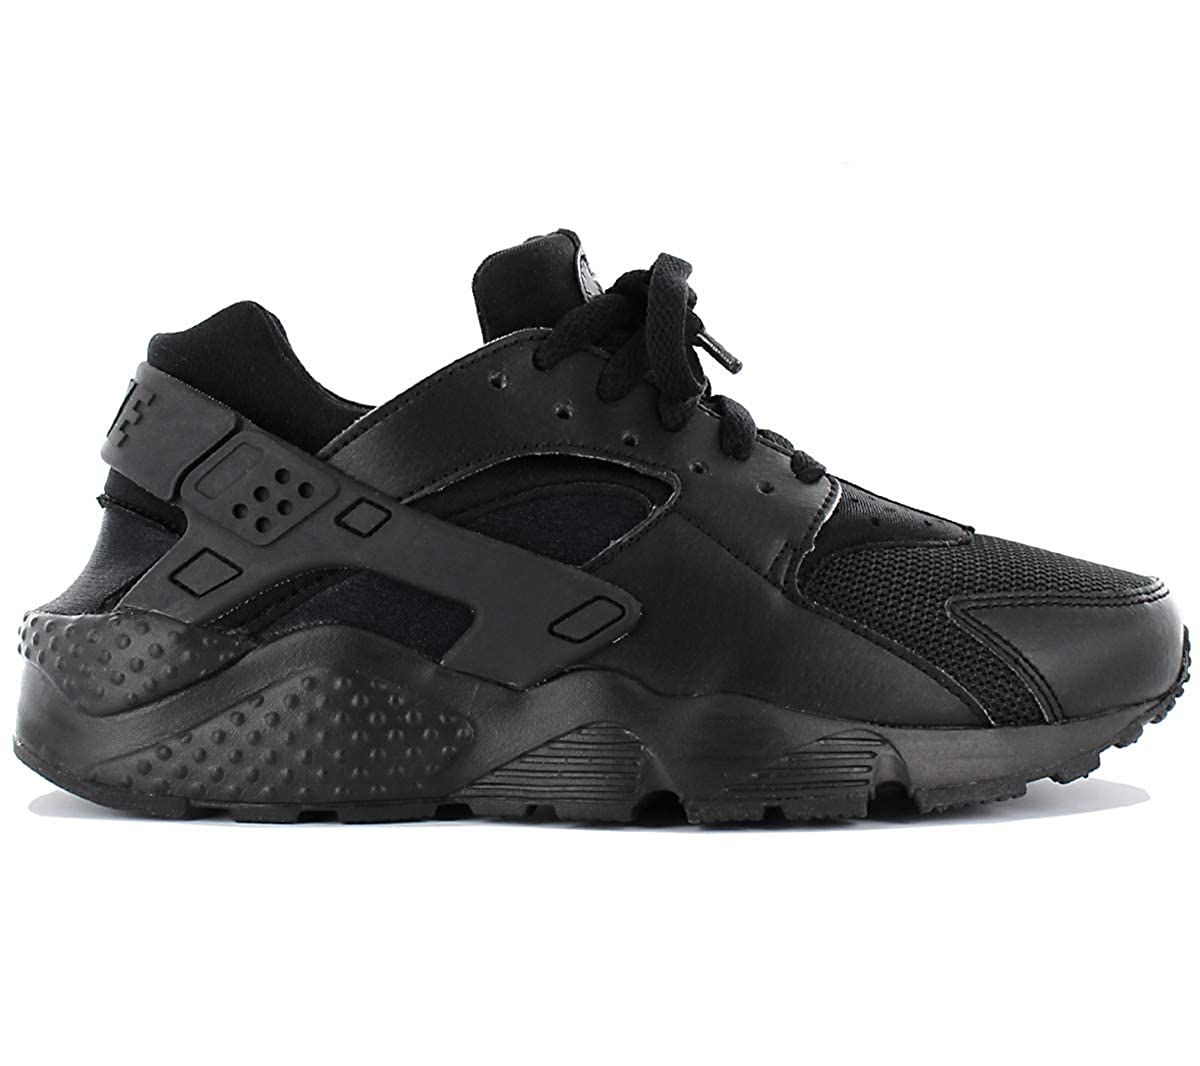 TALLA 38.5 EU. Nike Boys Huarache Run (GS) Shoe, Zapatillas Unisex Niños